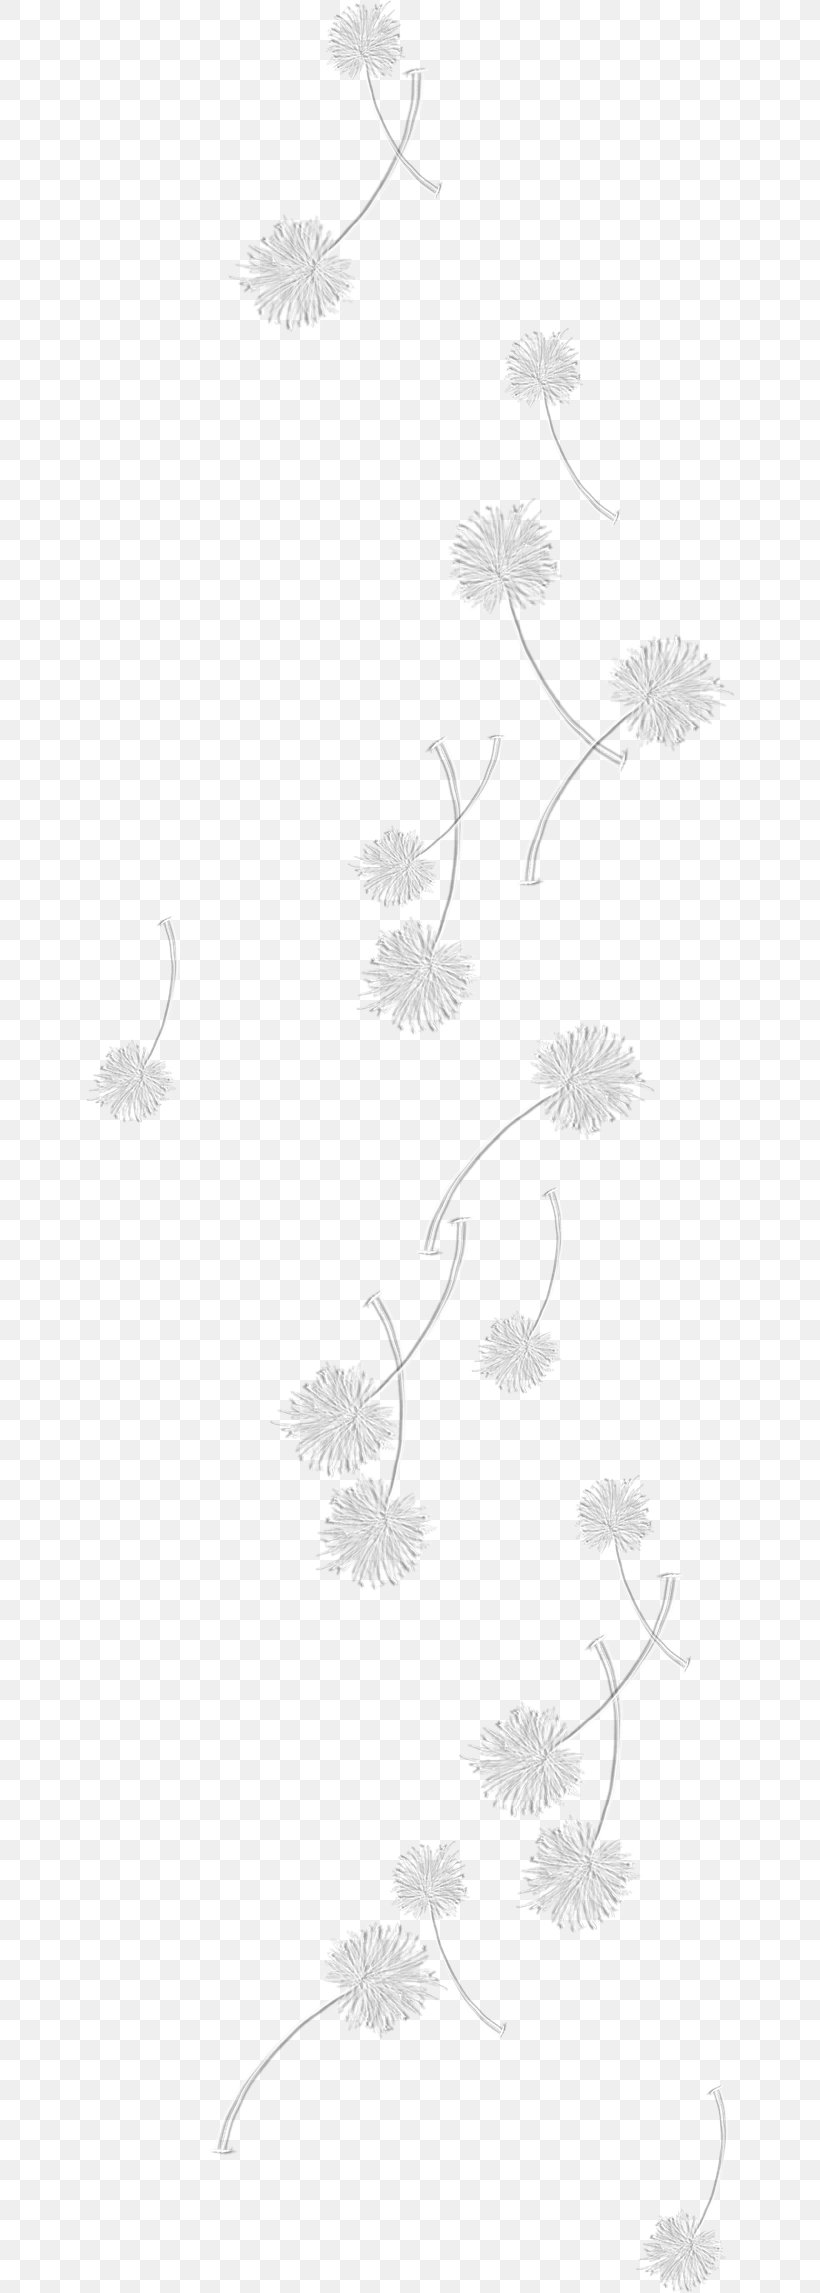 Paper White Black Pattern, PNG, 650x2293px, Paper, Area, Black, Black And White, Border Download Free